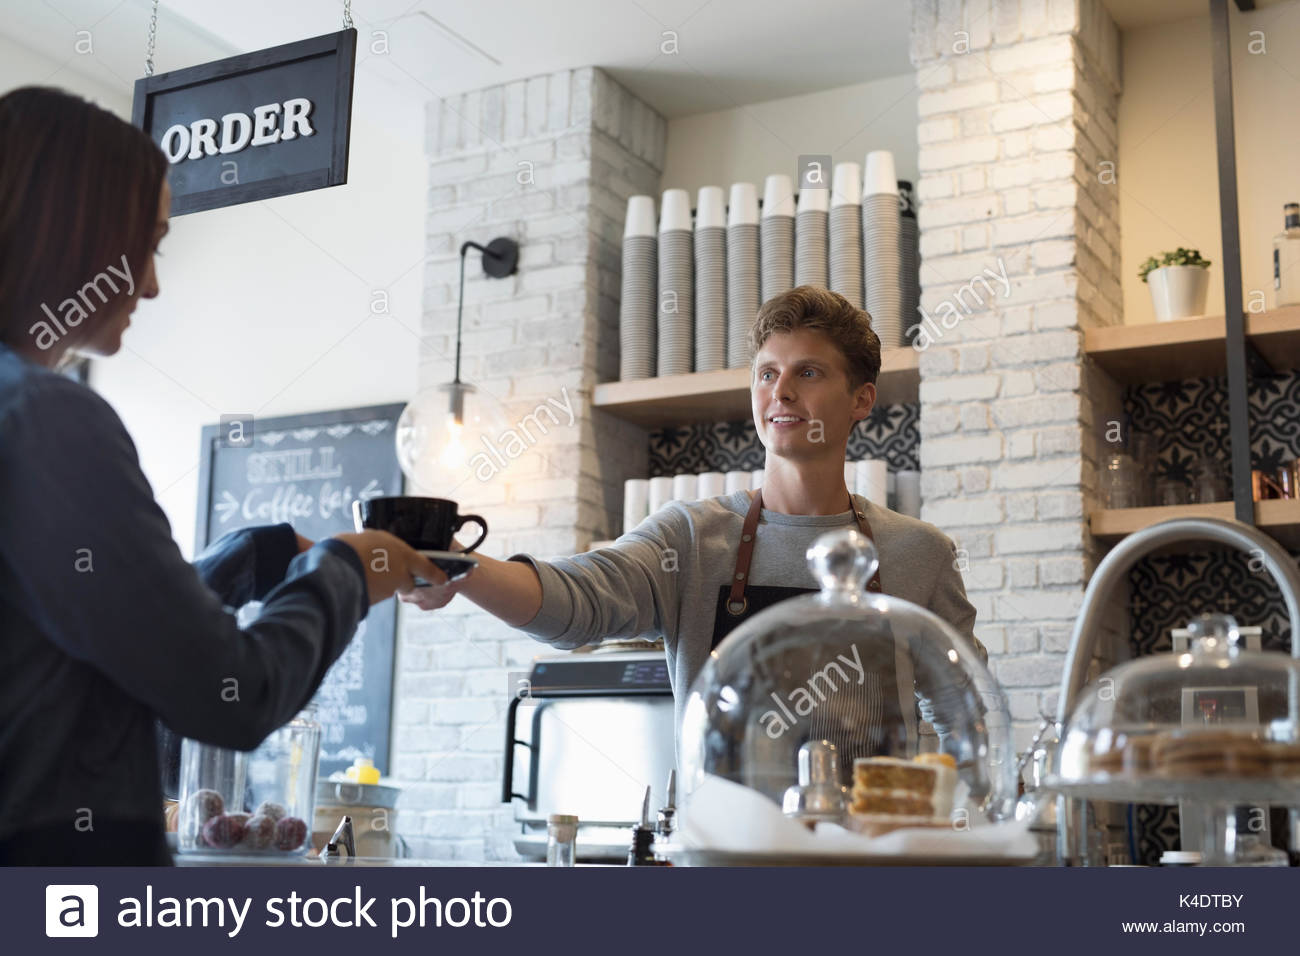 Male barista serving coffee to female customer in cafe - Stock Image